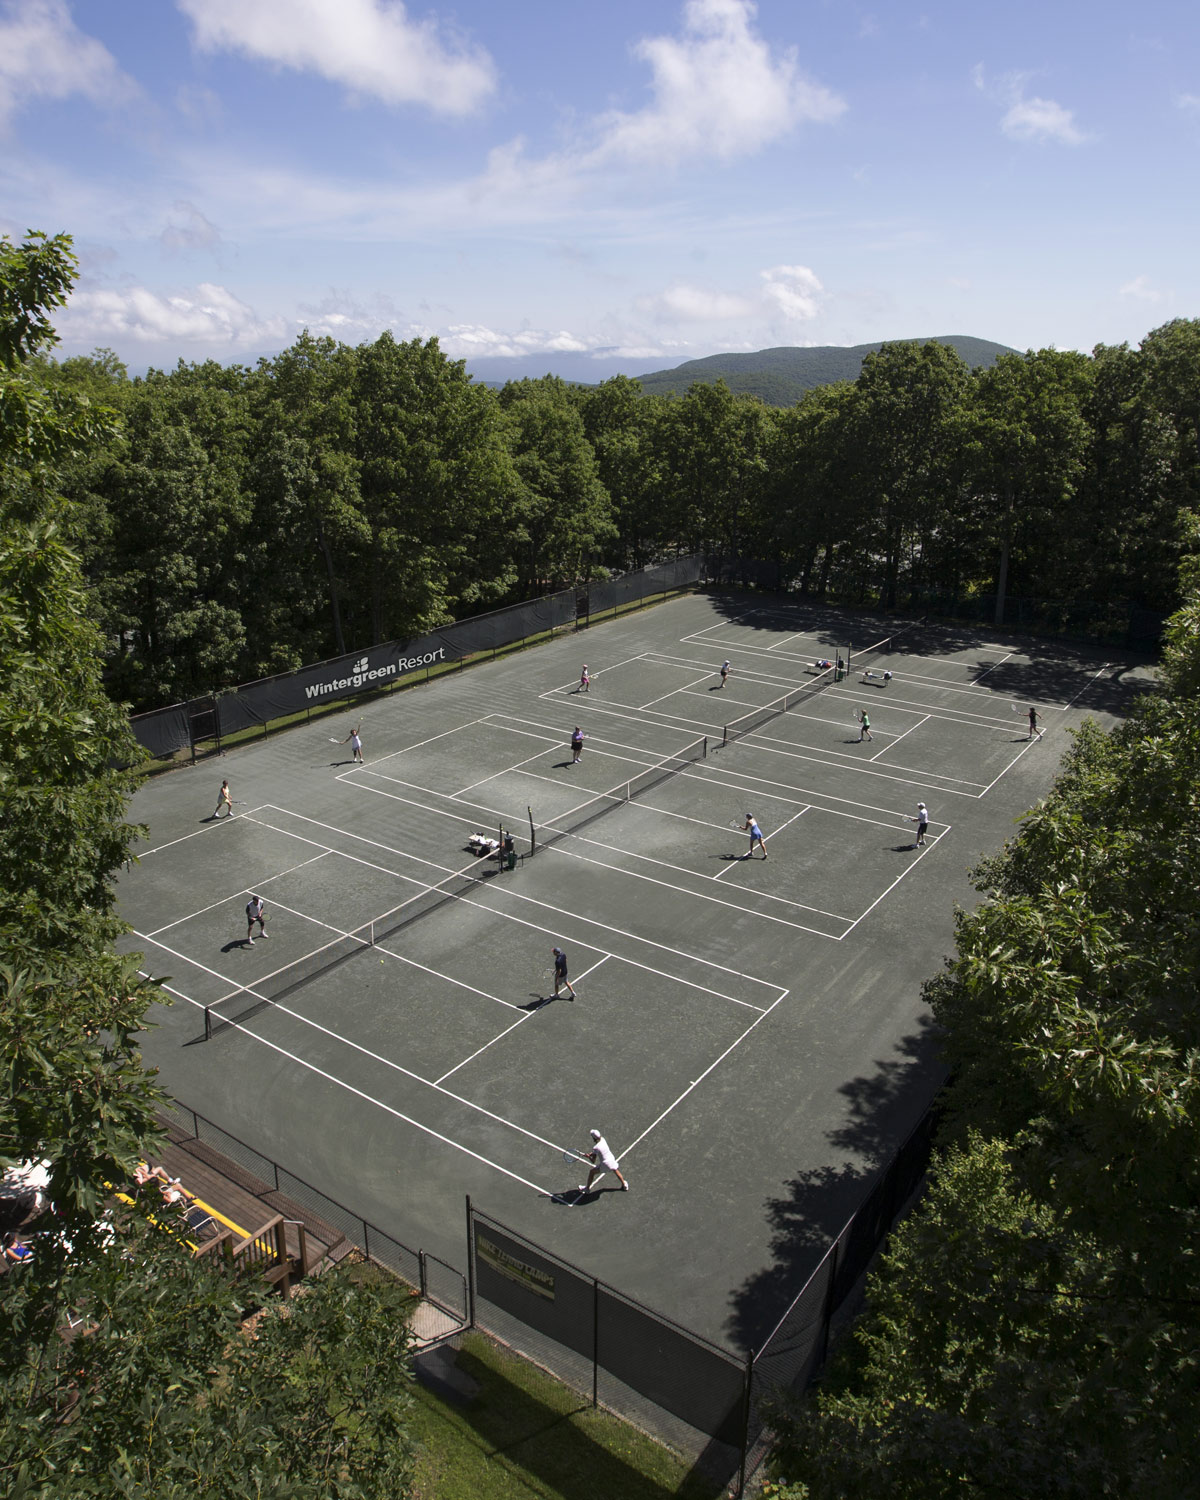 devils knob tennis facility outdoor courts